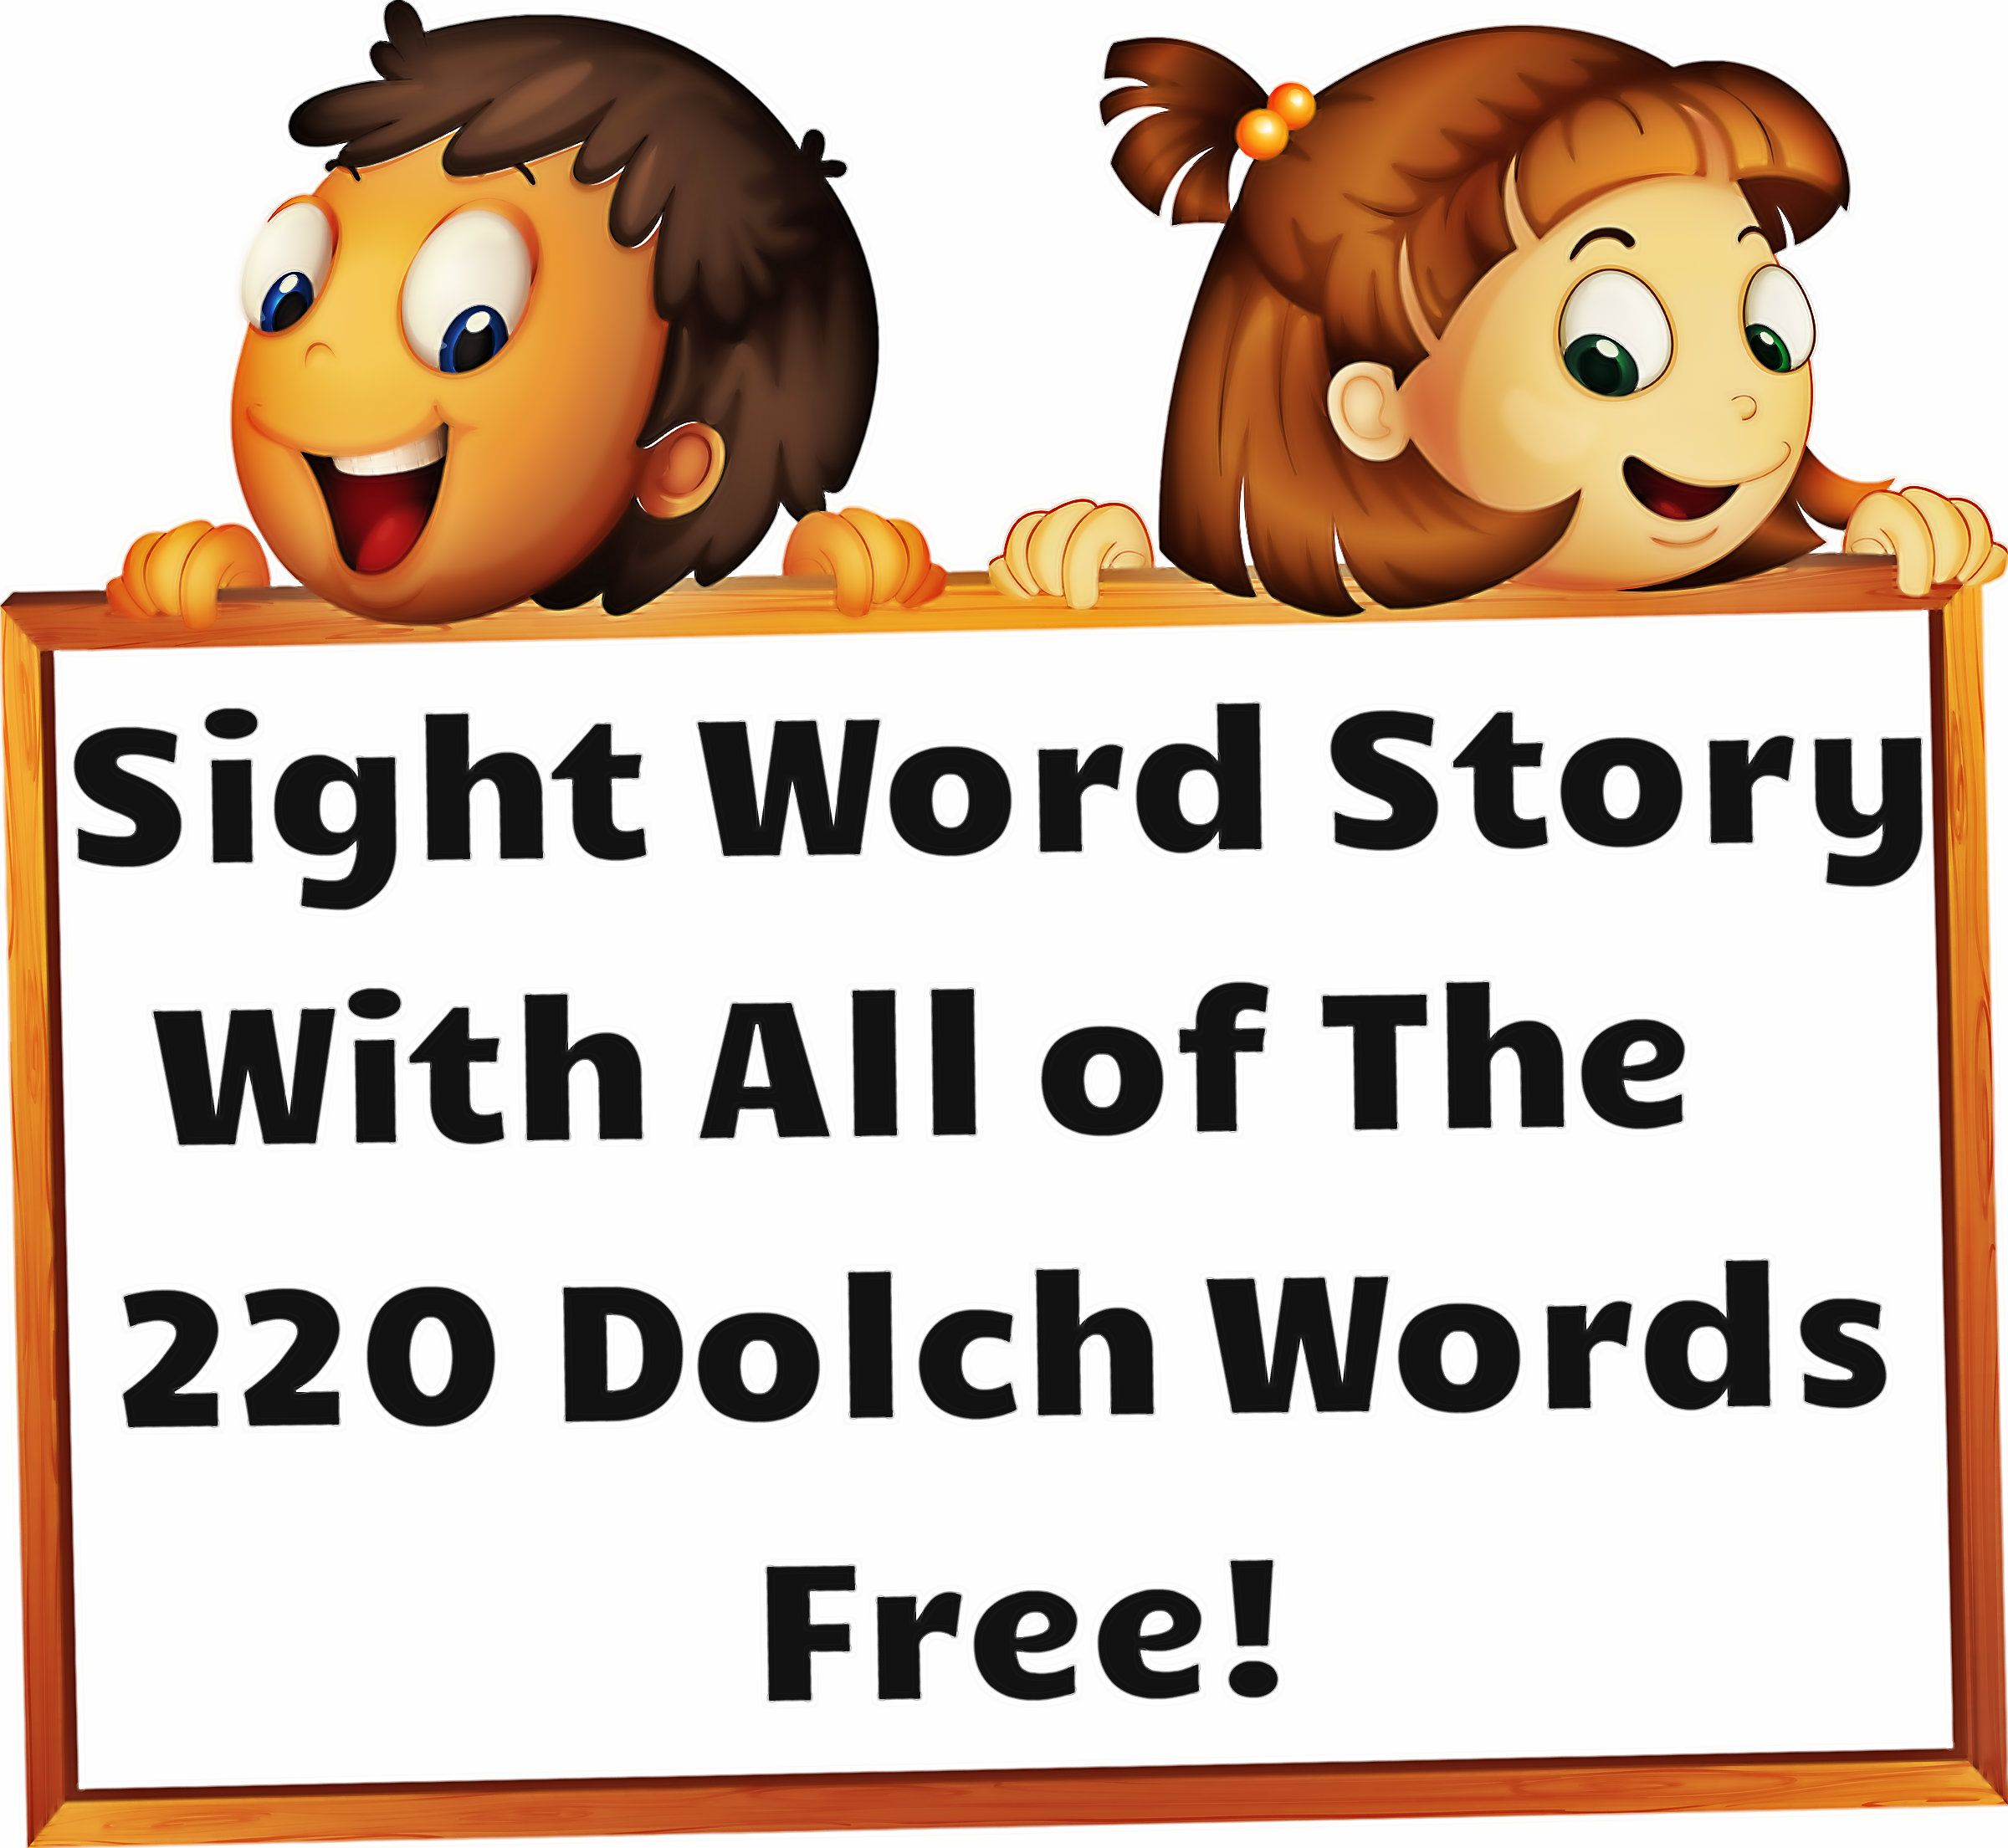 Sight Word Story With All 220 Dolch Words Free Download